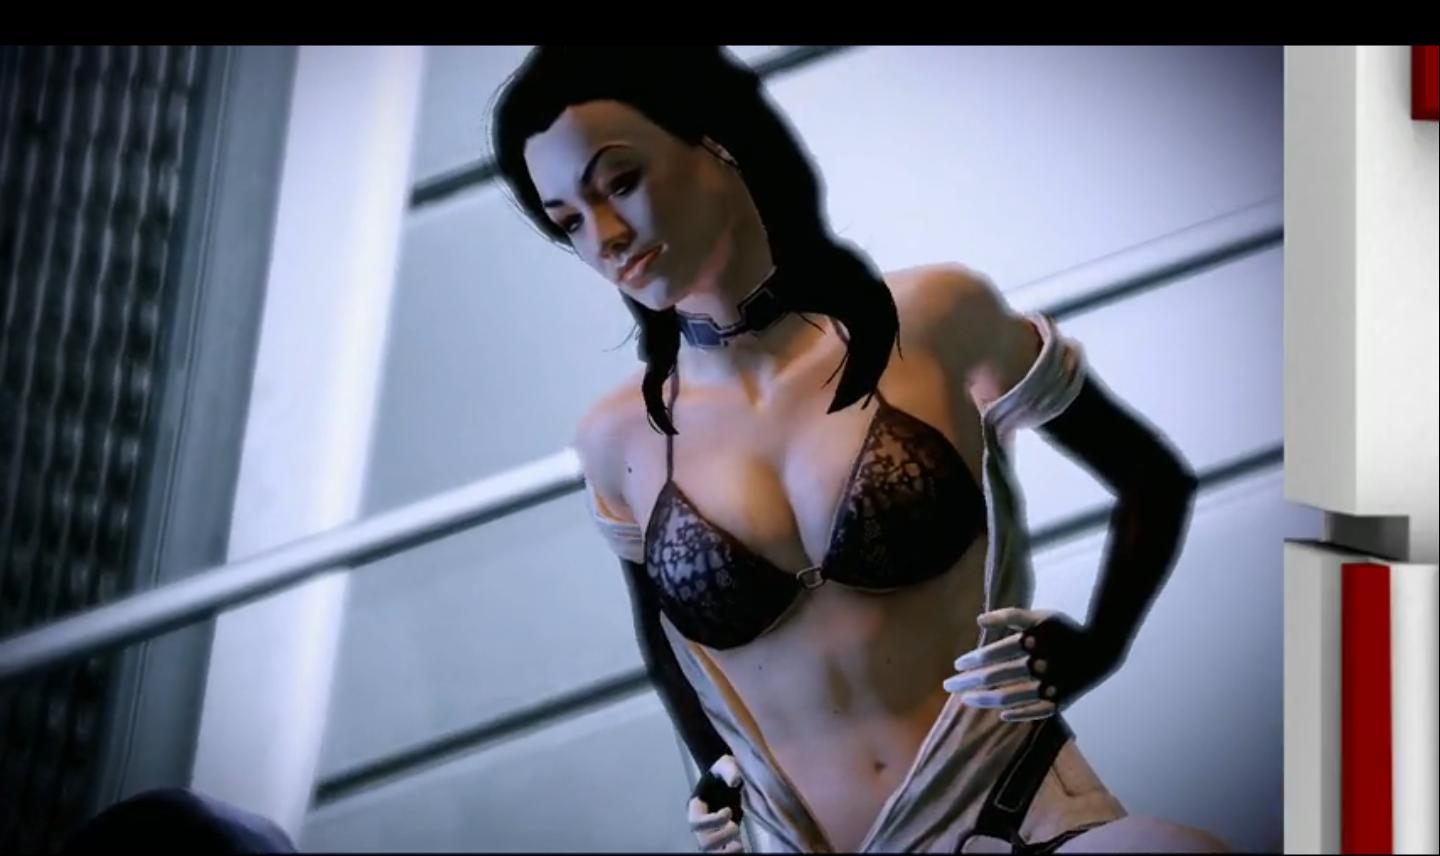 Mass effect 3 nude pack ps3 pics anime tube